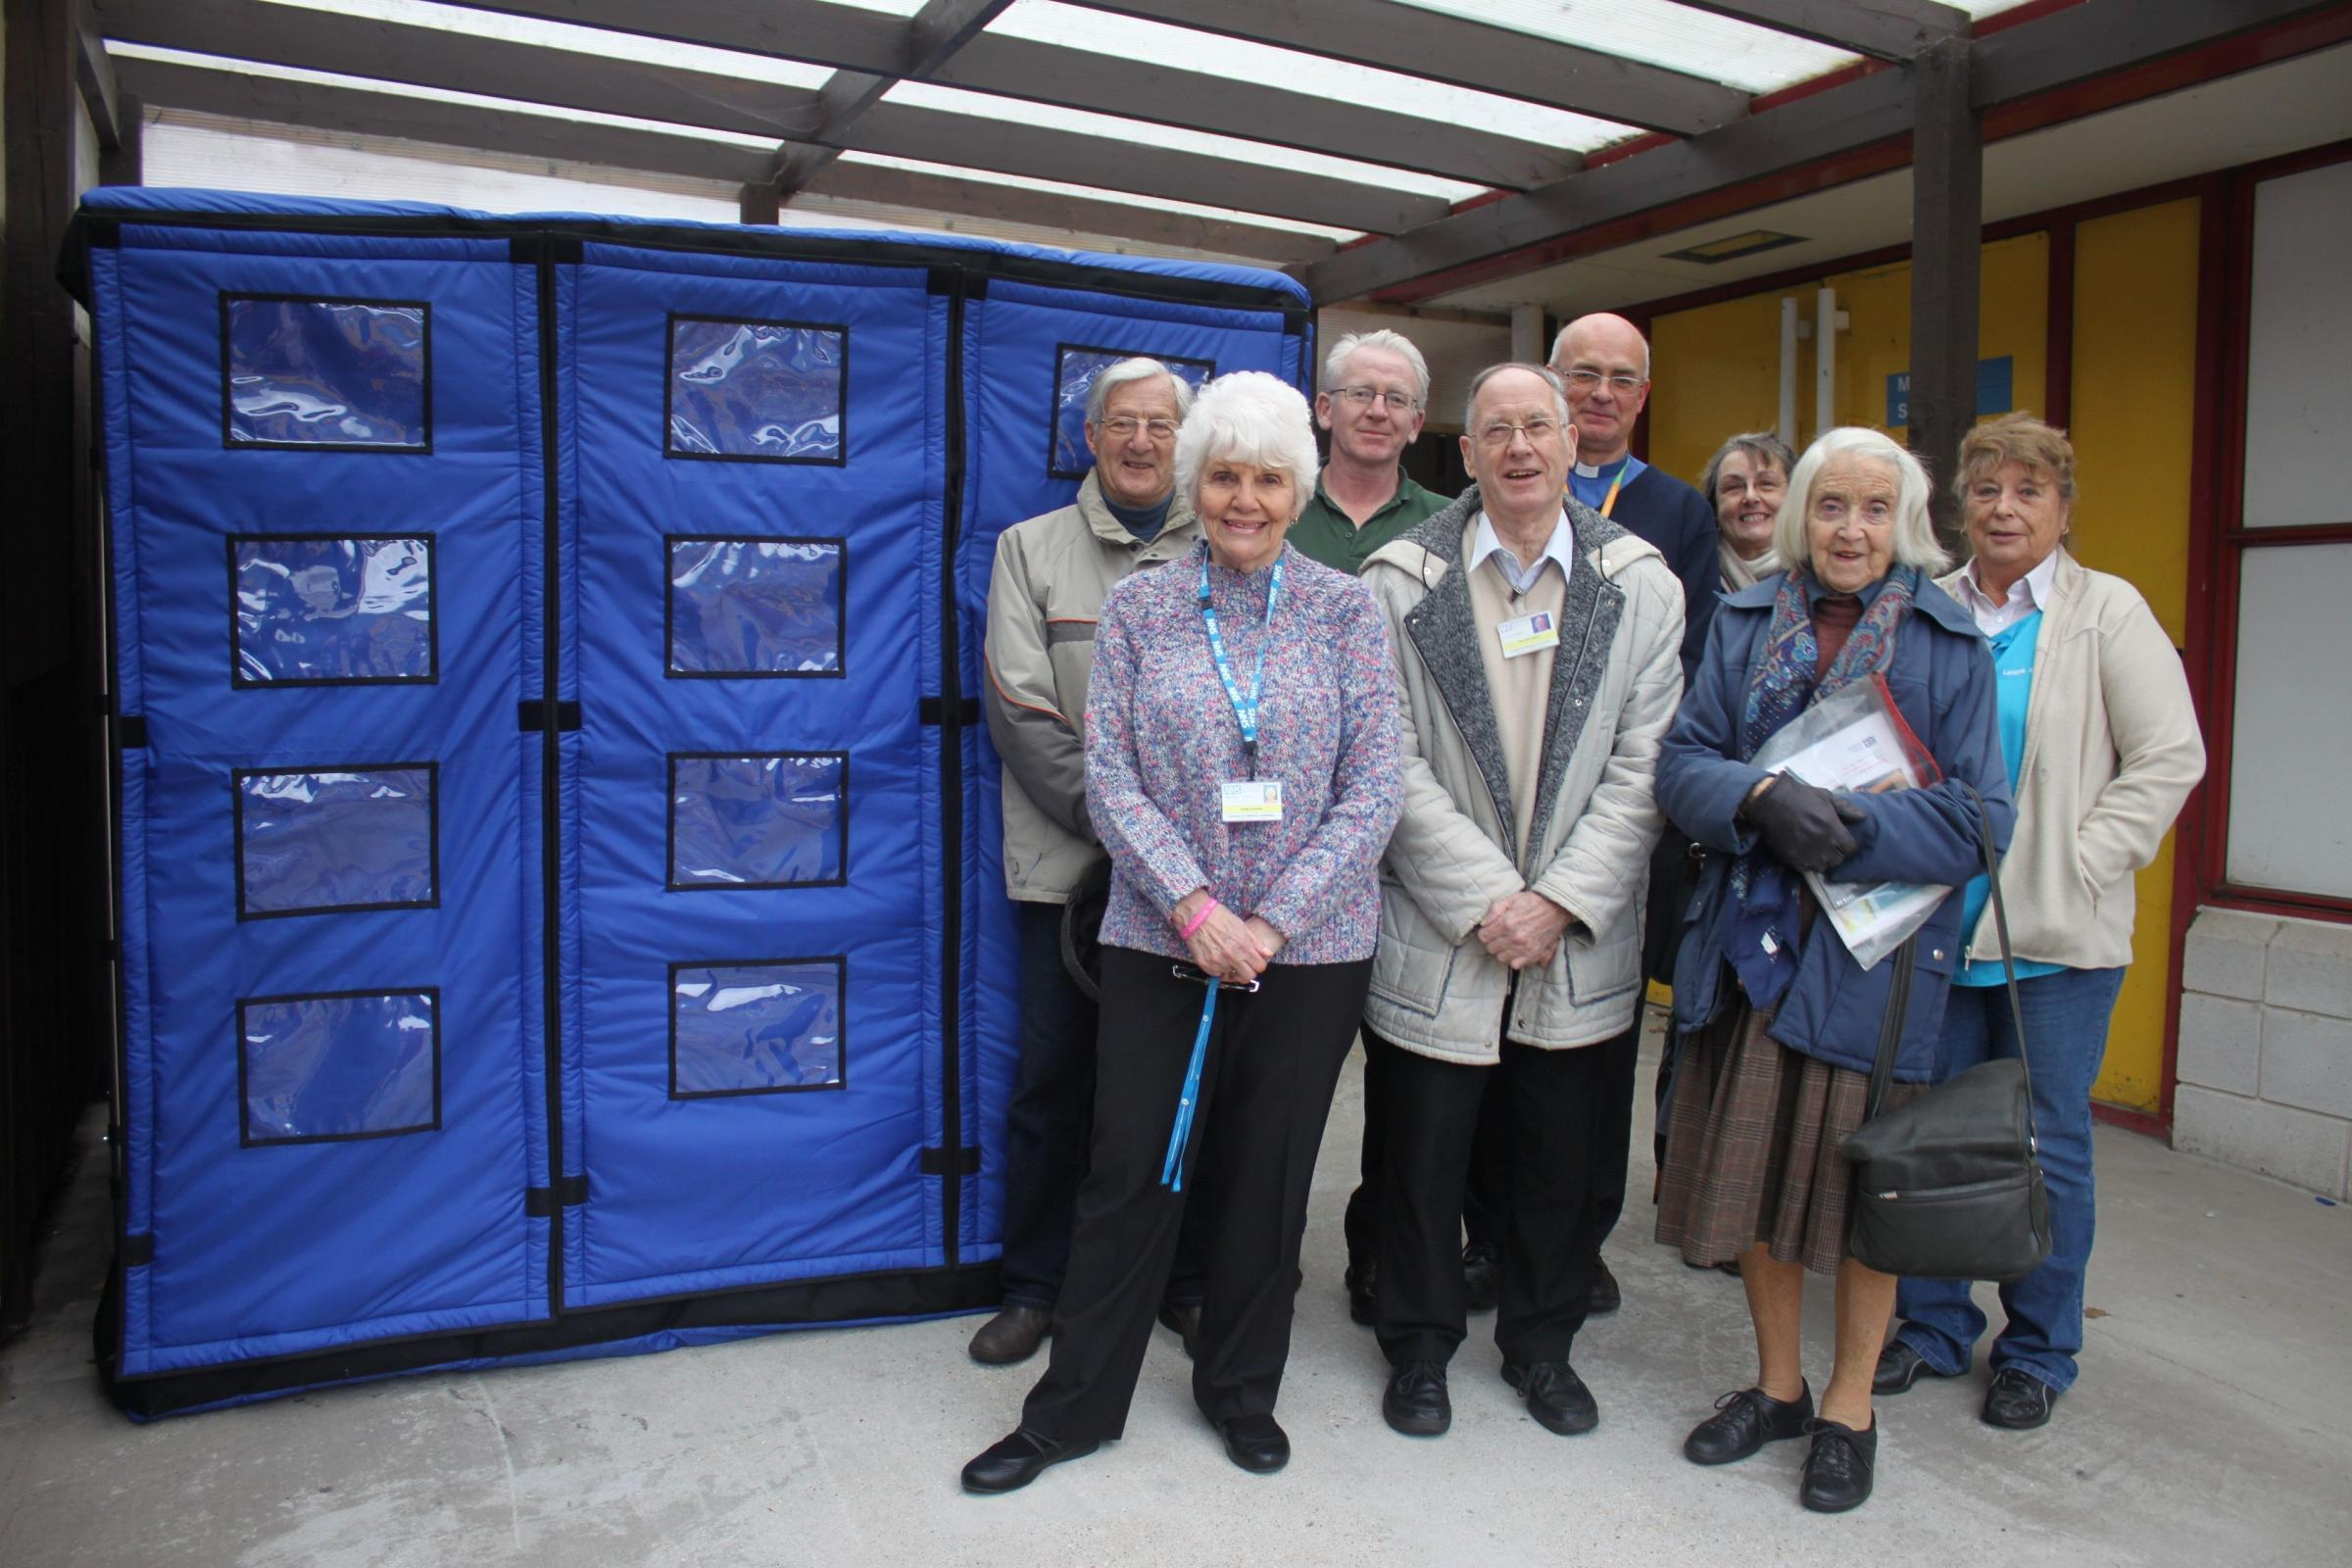 Back row Clive Fawn, John Flattery, RBH Lead Chaplain David Flowers, Penny Tansley, Dorinda Sheppard. Front row Rosie Havers, Bill Hardy and Claire Austin-Smith.Royal Bournemouth Hospital's new mobile mortuary, February 2016.